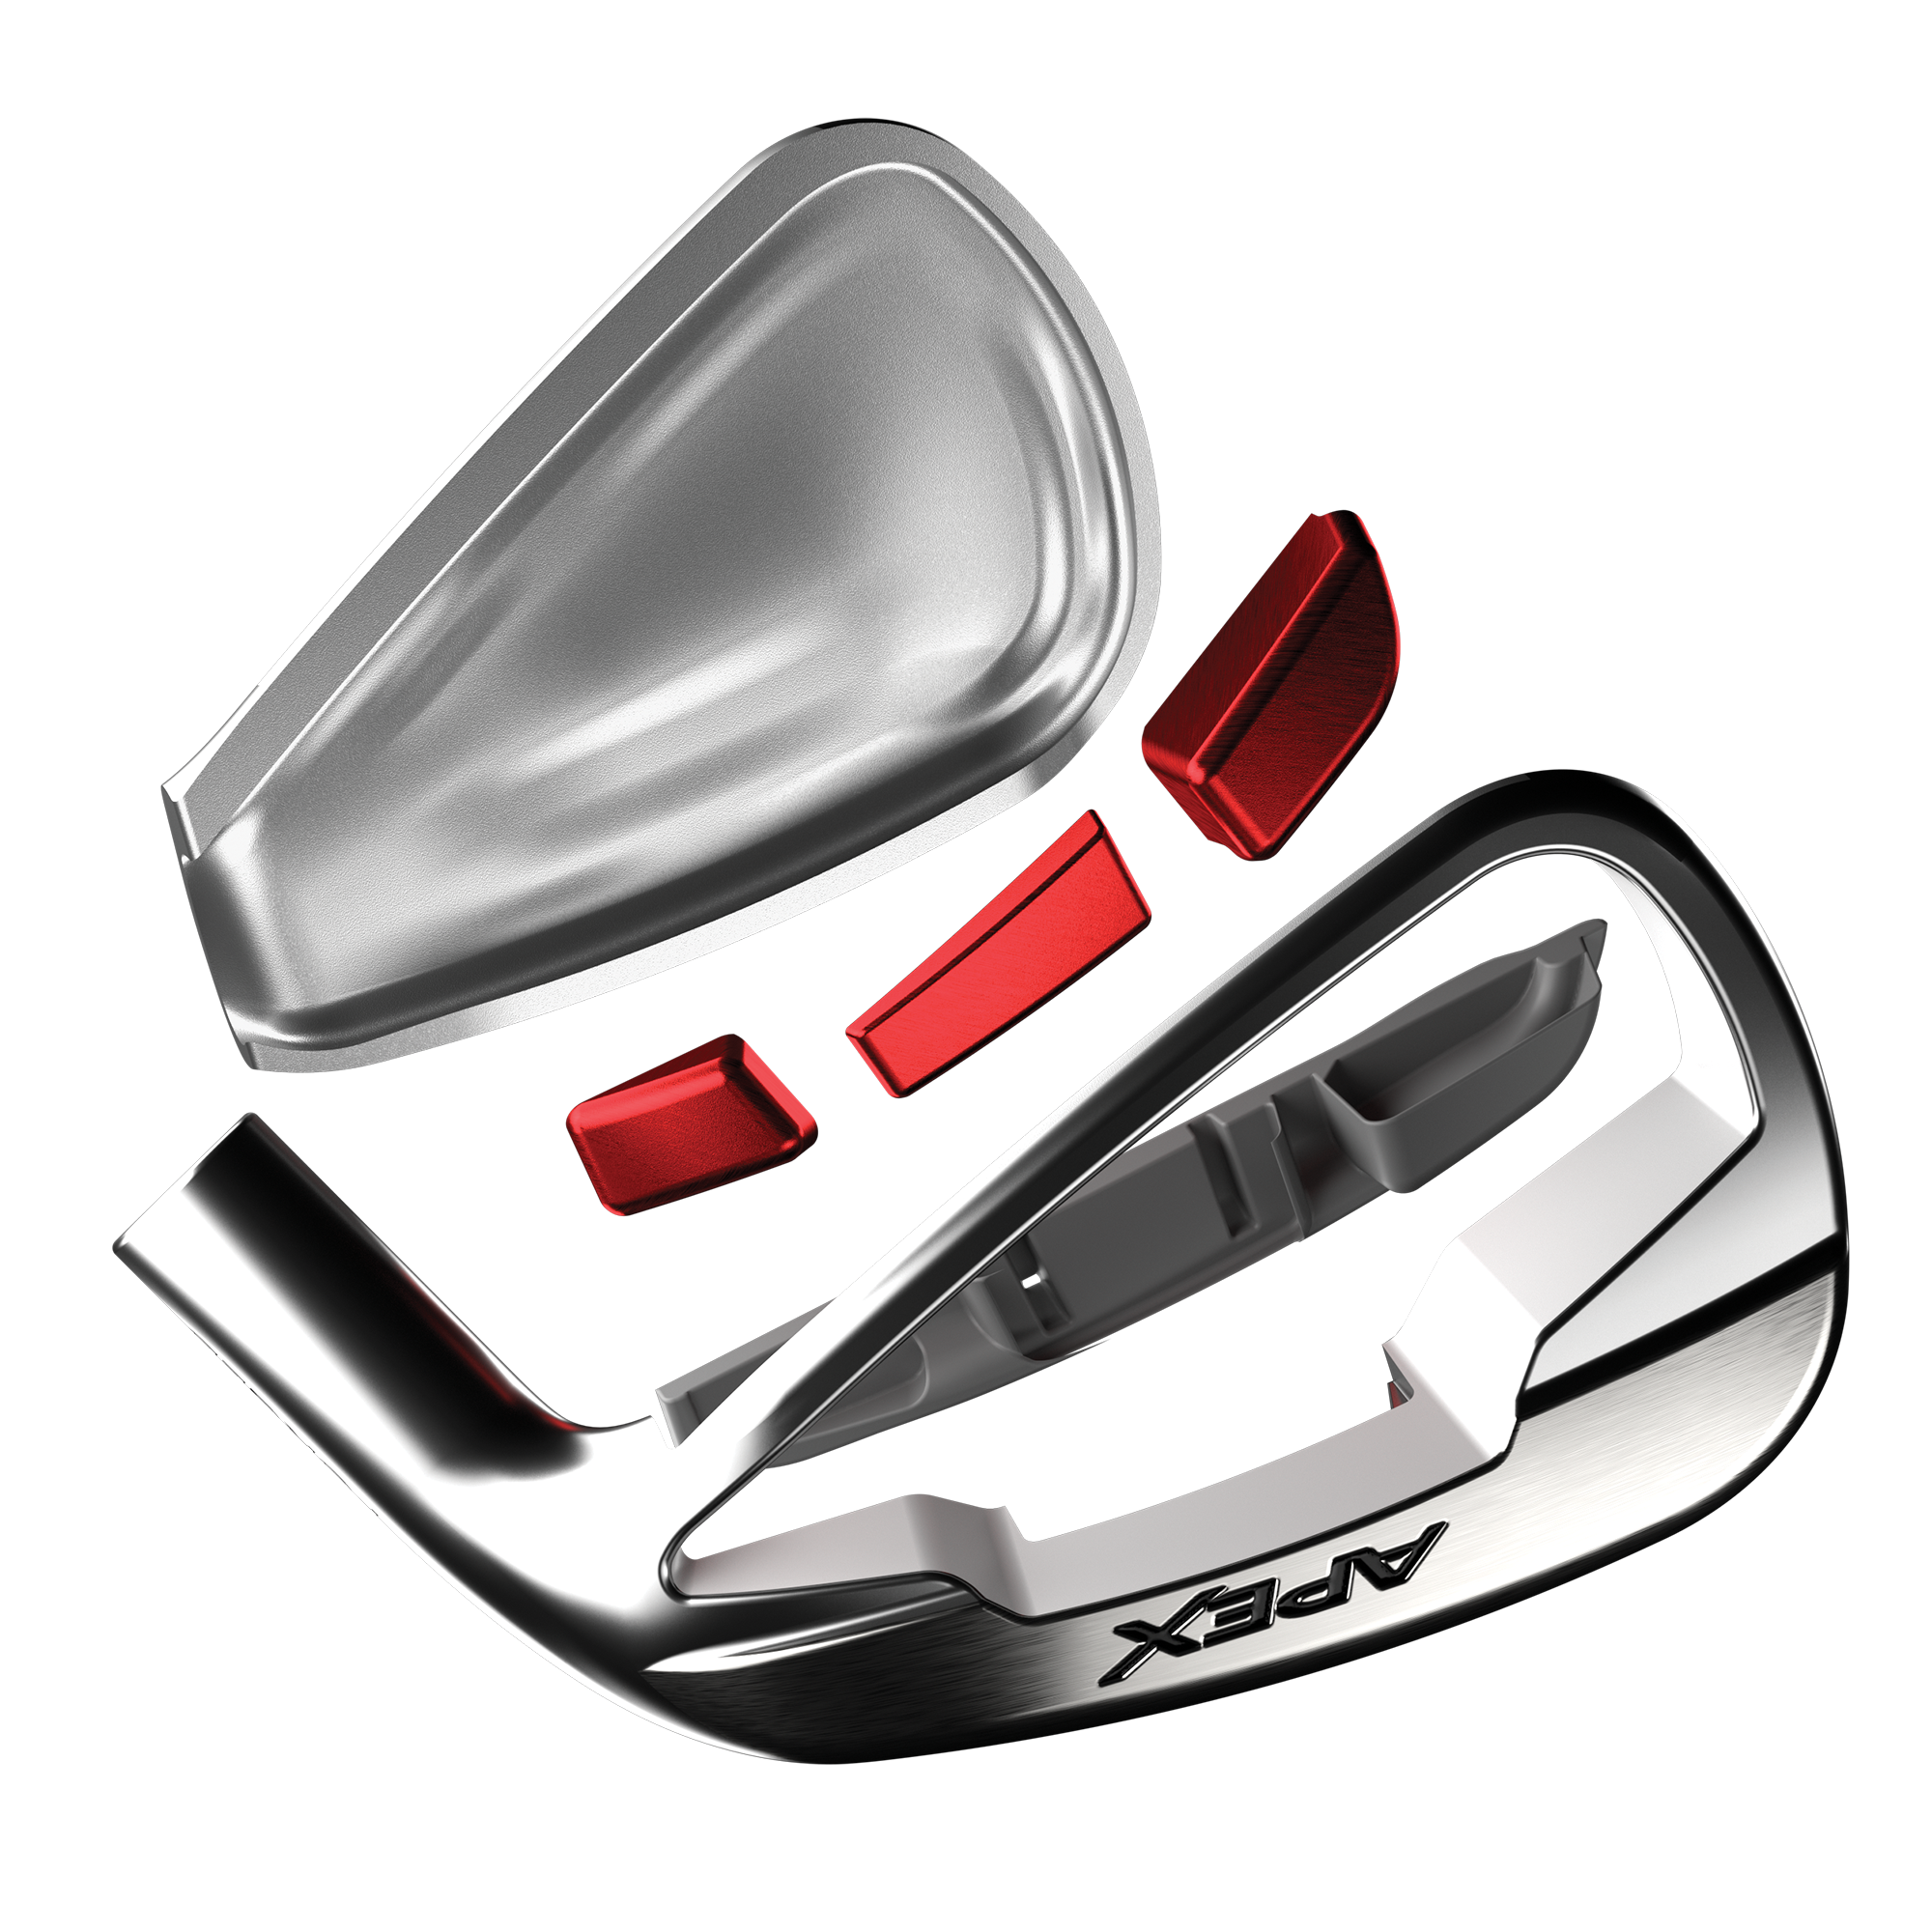 Apex DCB Irons illustration